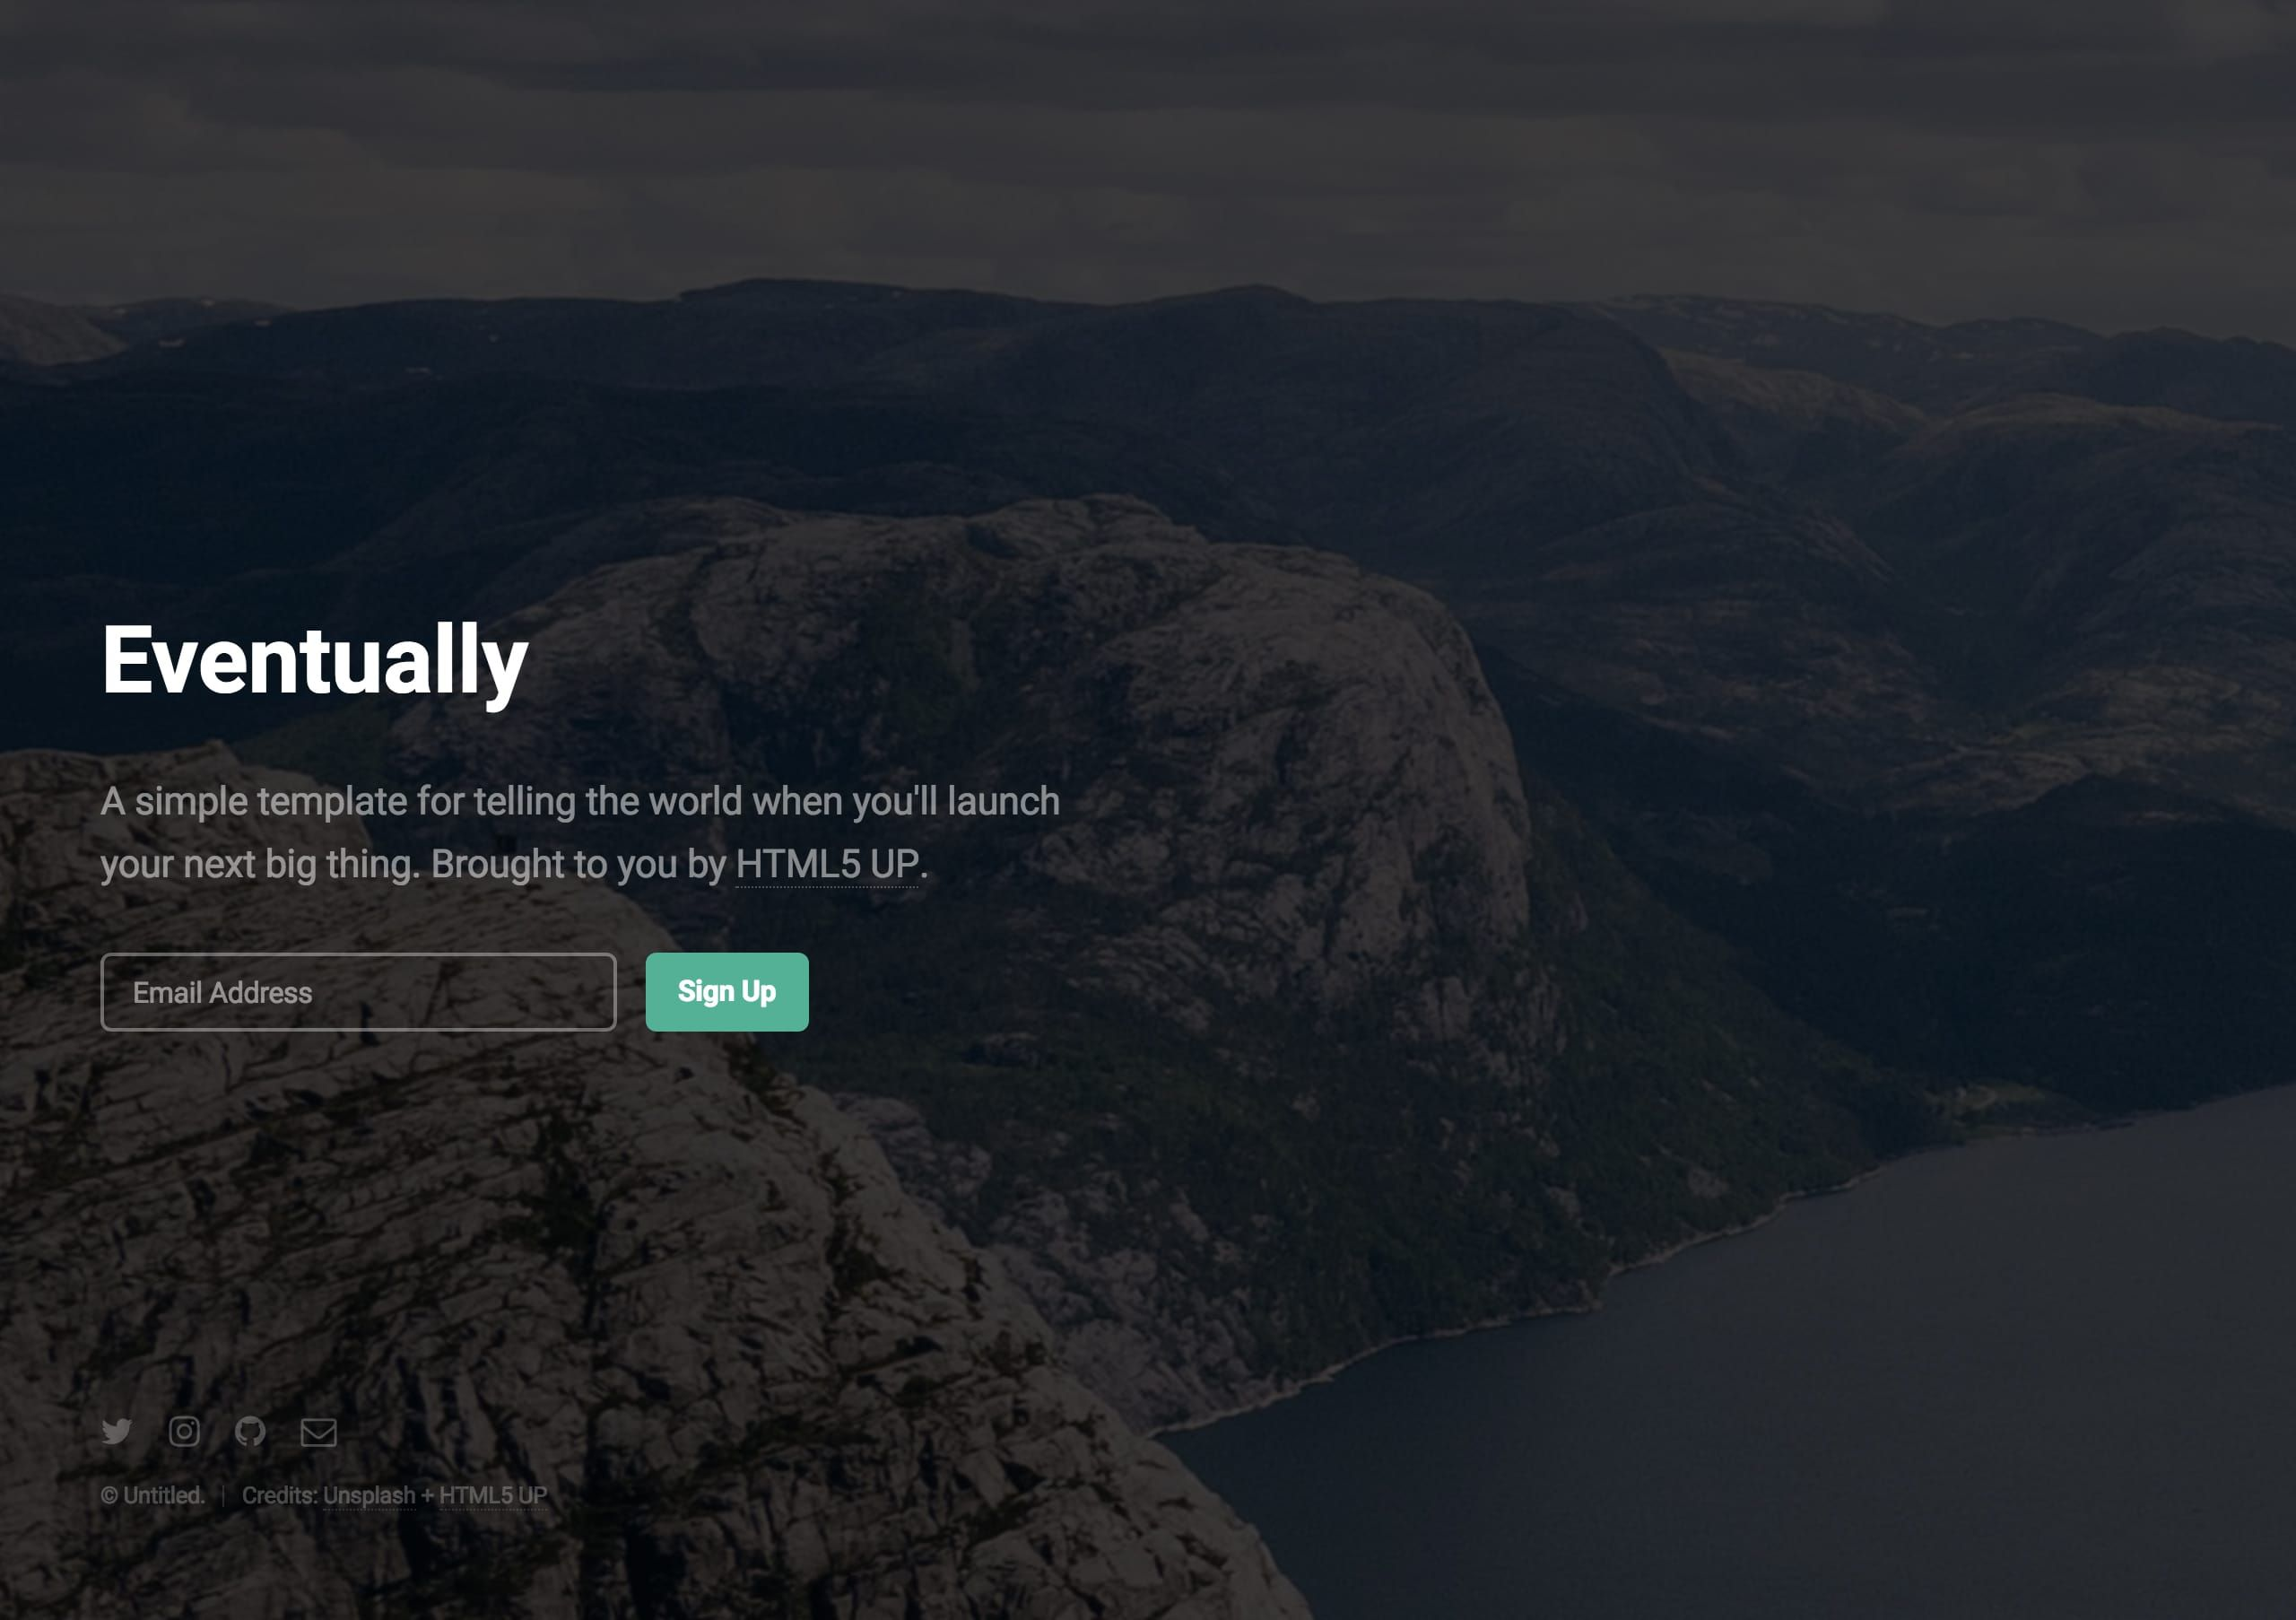 'Eventually' is a FREE Launching Soon HTML template by